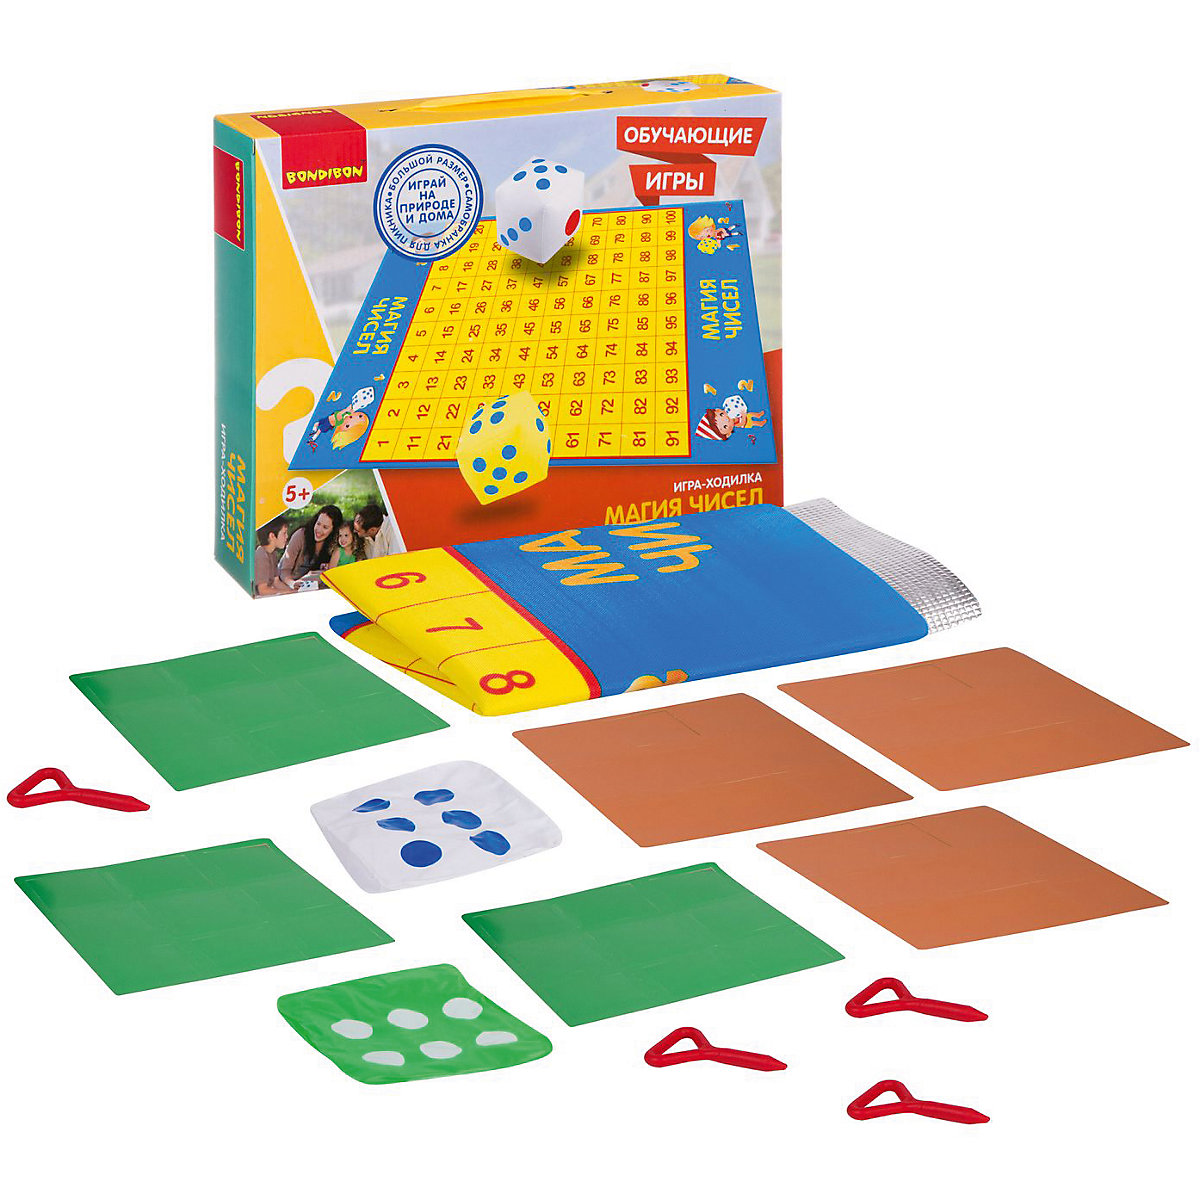 BONDIBON Party Games 9366210 education toys logic board game toy bondibon party games 10367336 education toys logic board game toy